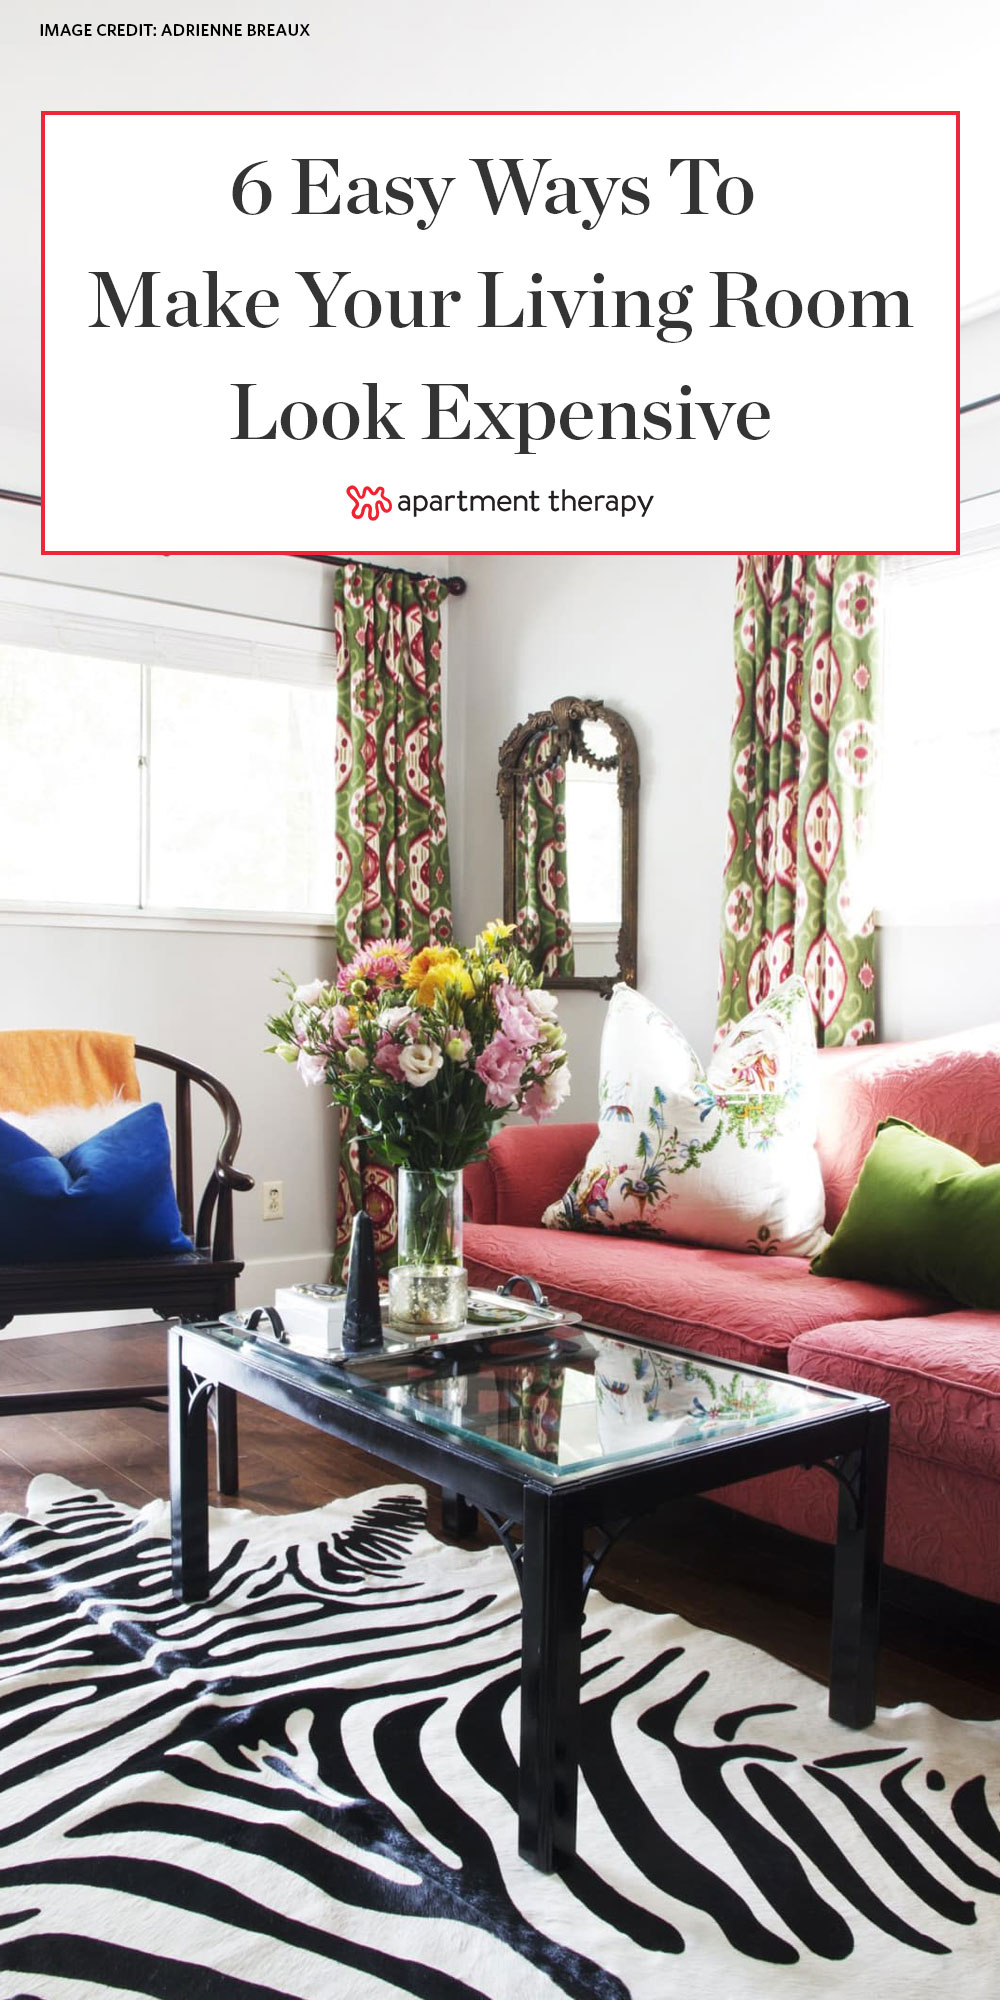 CHEAP LIVING ROOM UPGRADES EASY LIVING ROOM SWAPS